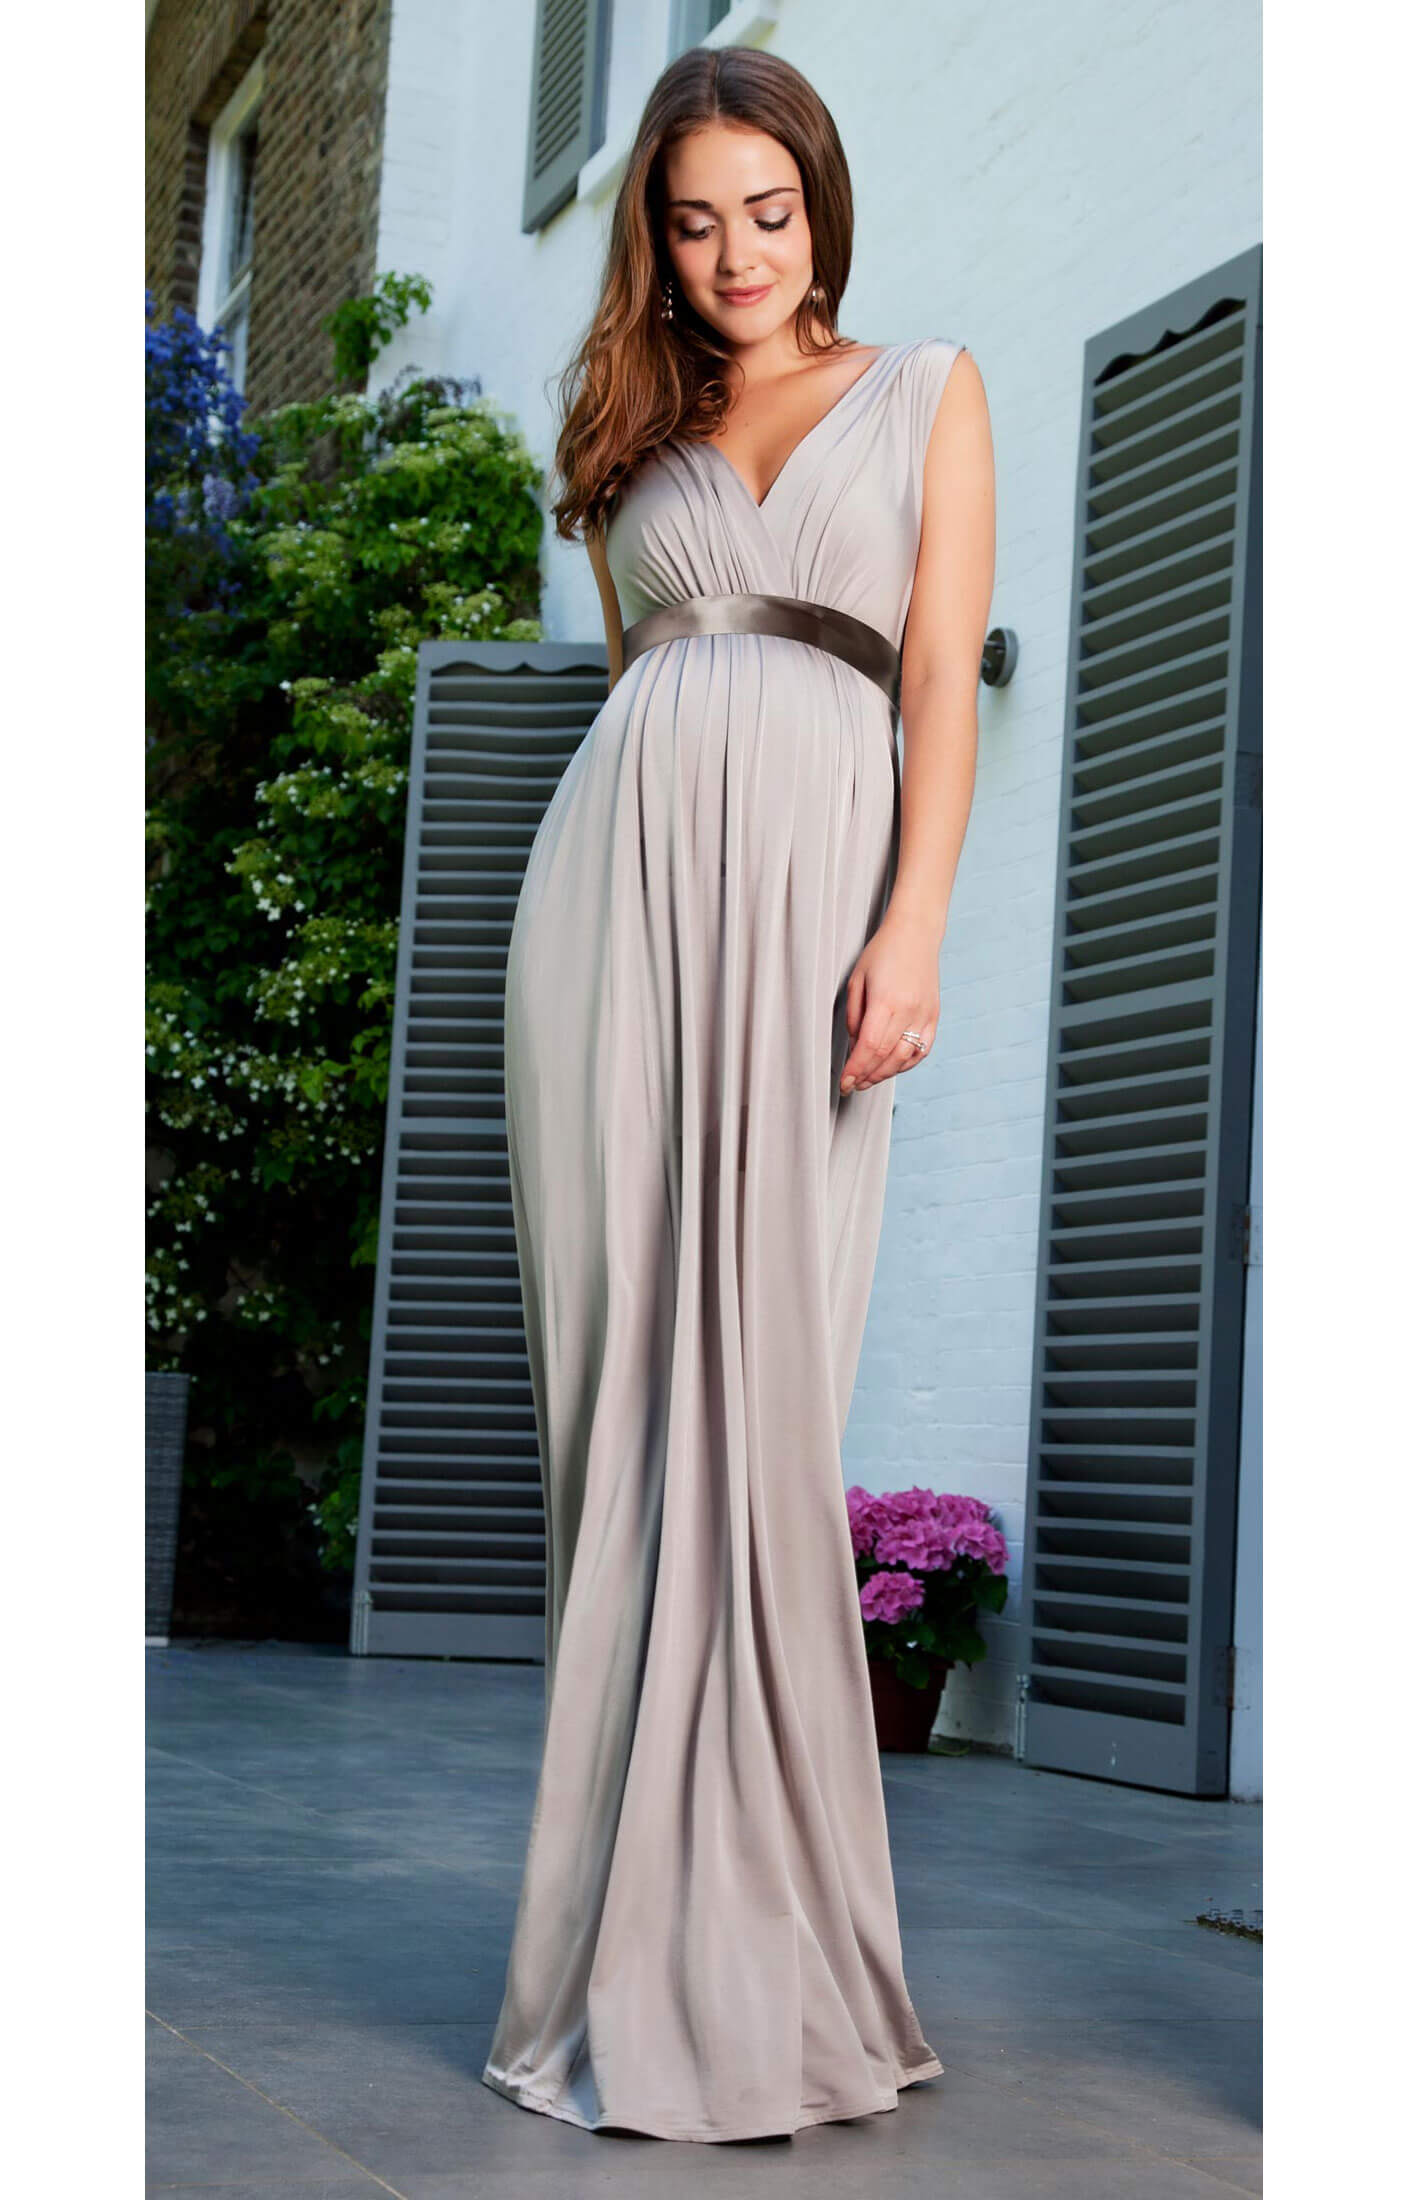 Anastasia maternity gown silver screen maternity wedding anastasia maternity gown silver screen maternity wedding dresses evening wear and party clothes by tiffany rose ombrellifo Gallery